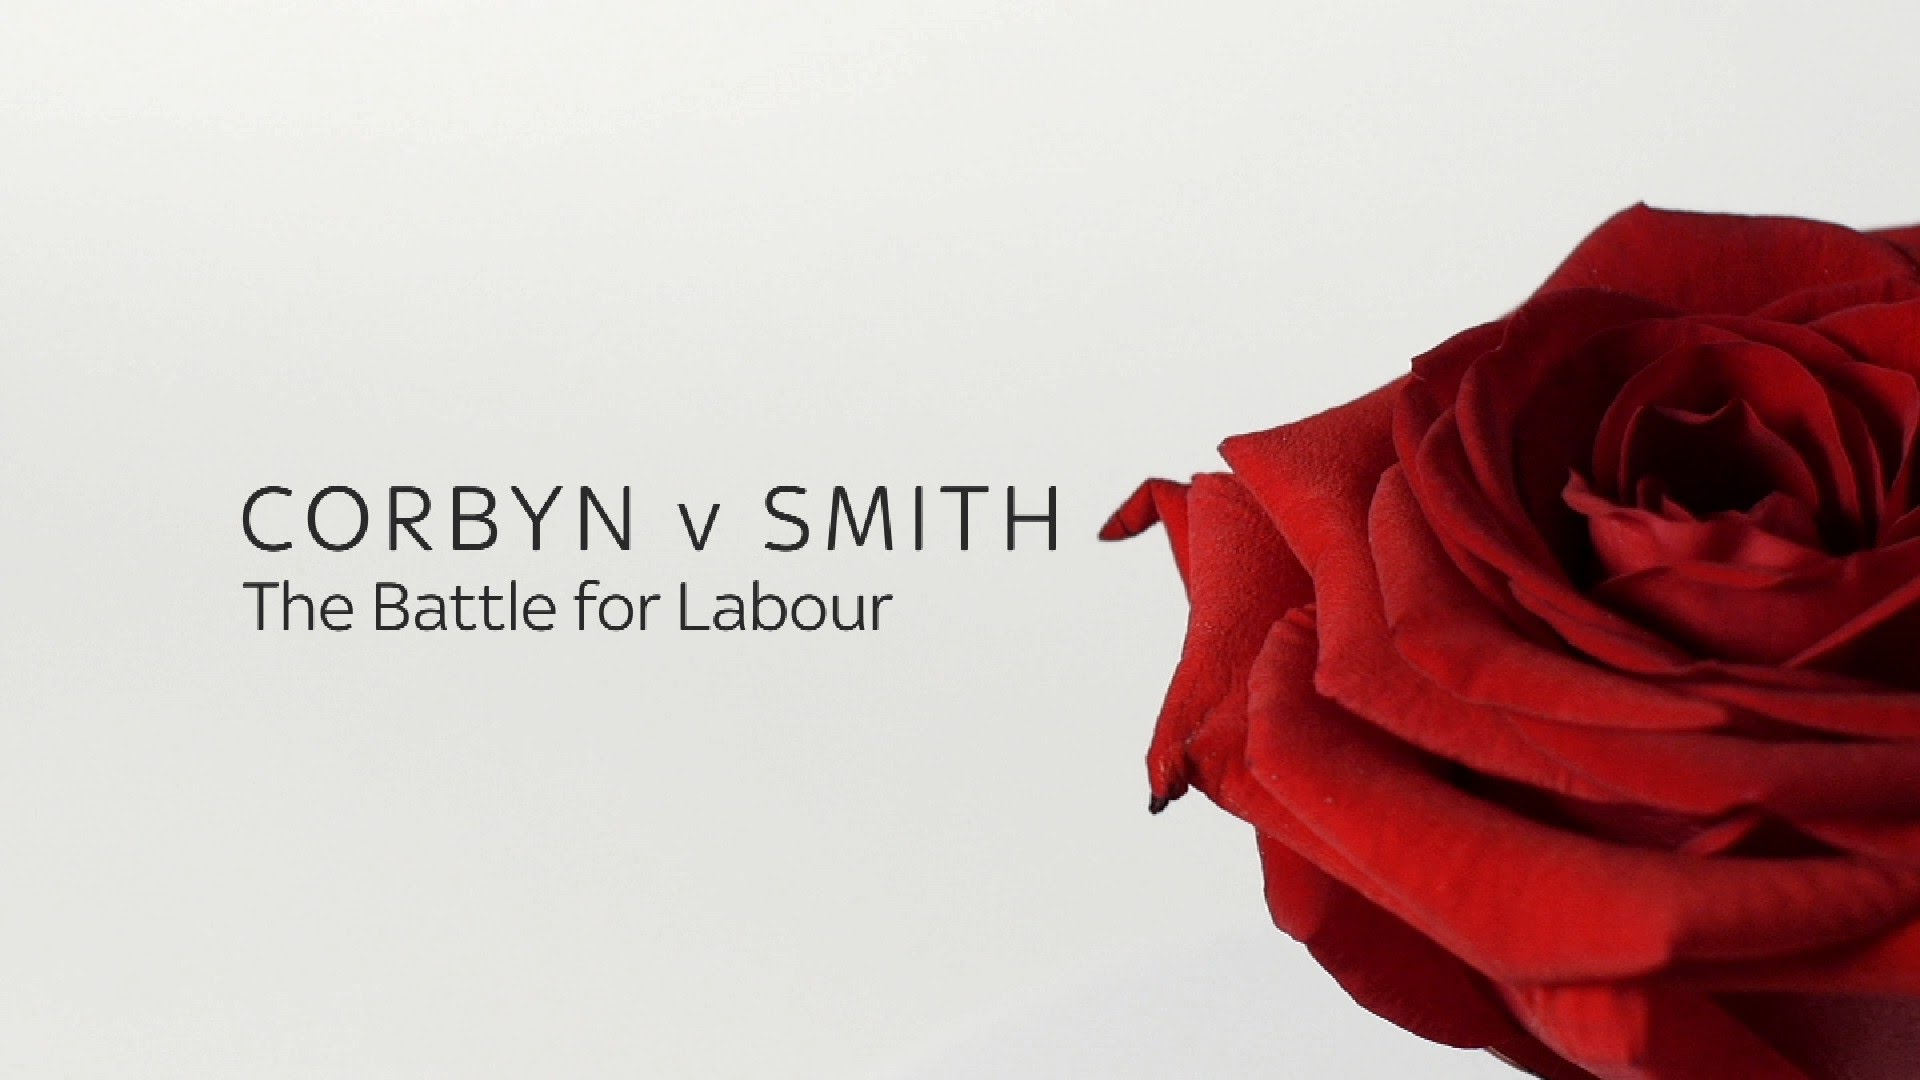 Corbyn v Smith - The Battle For Labour 13